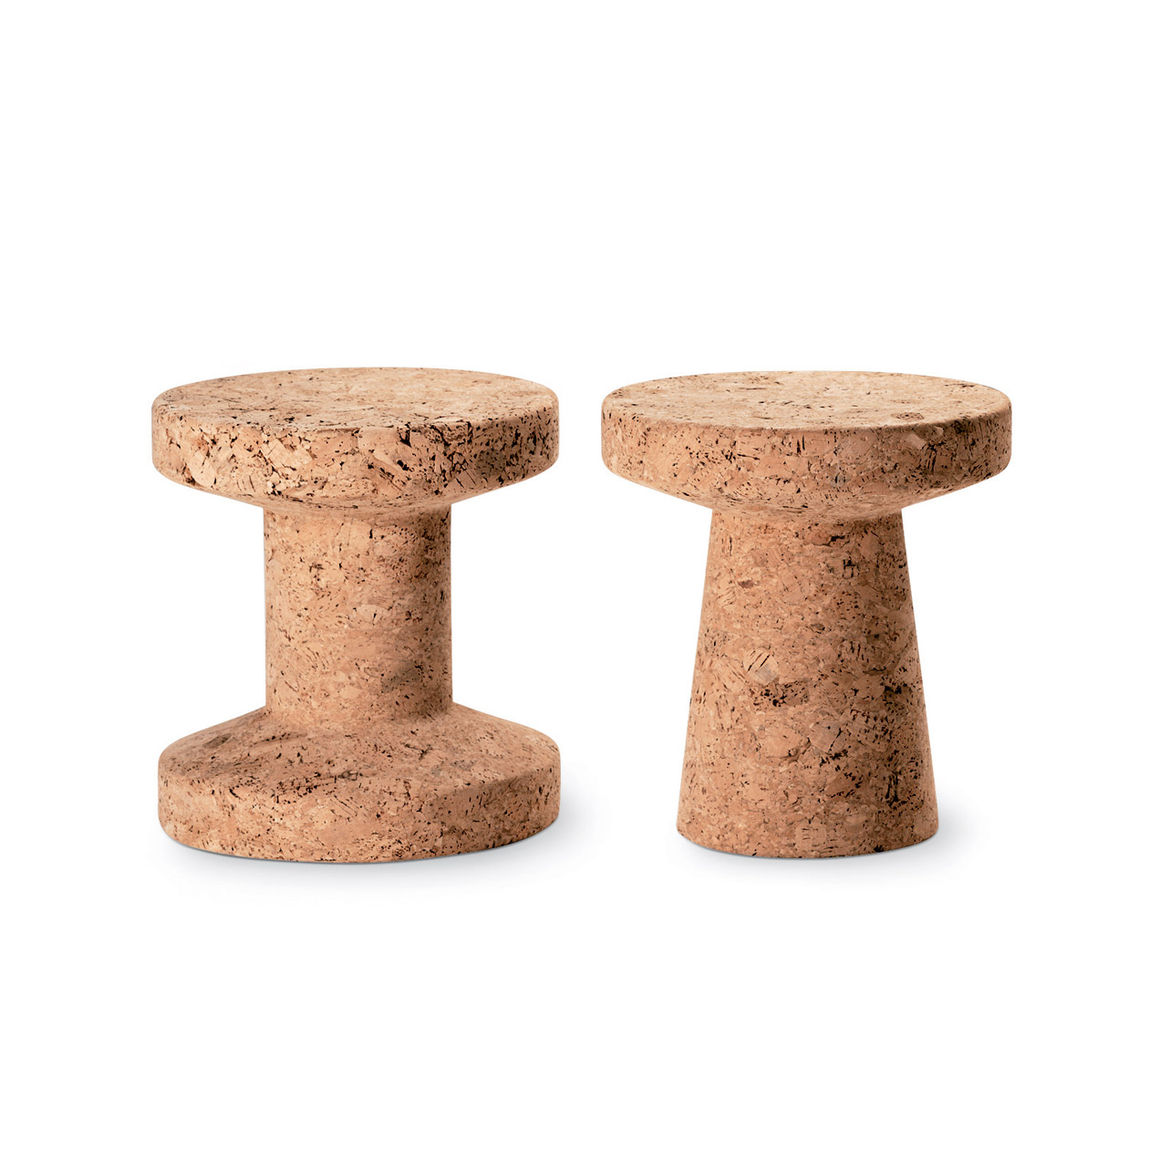 Holiday gift guide 2016 Dwell Store Graduates picks like the Vitra cork stools